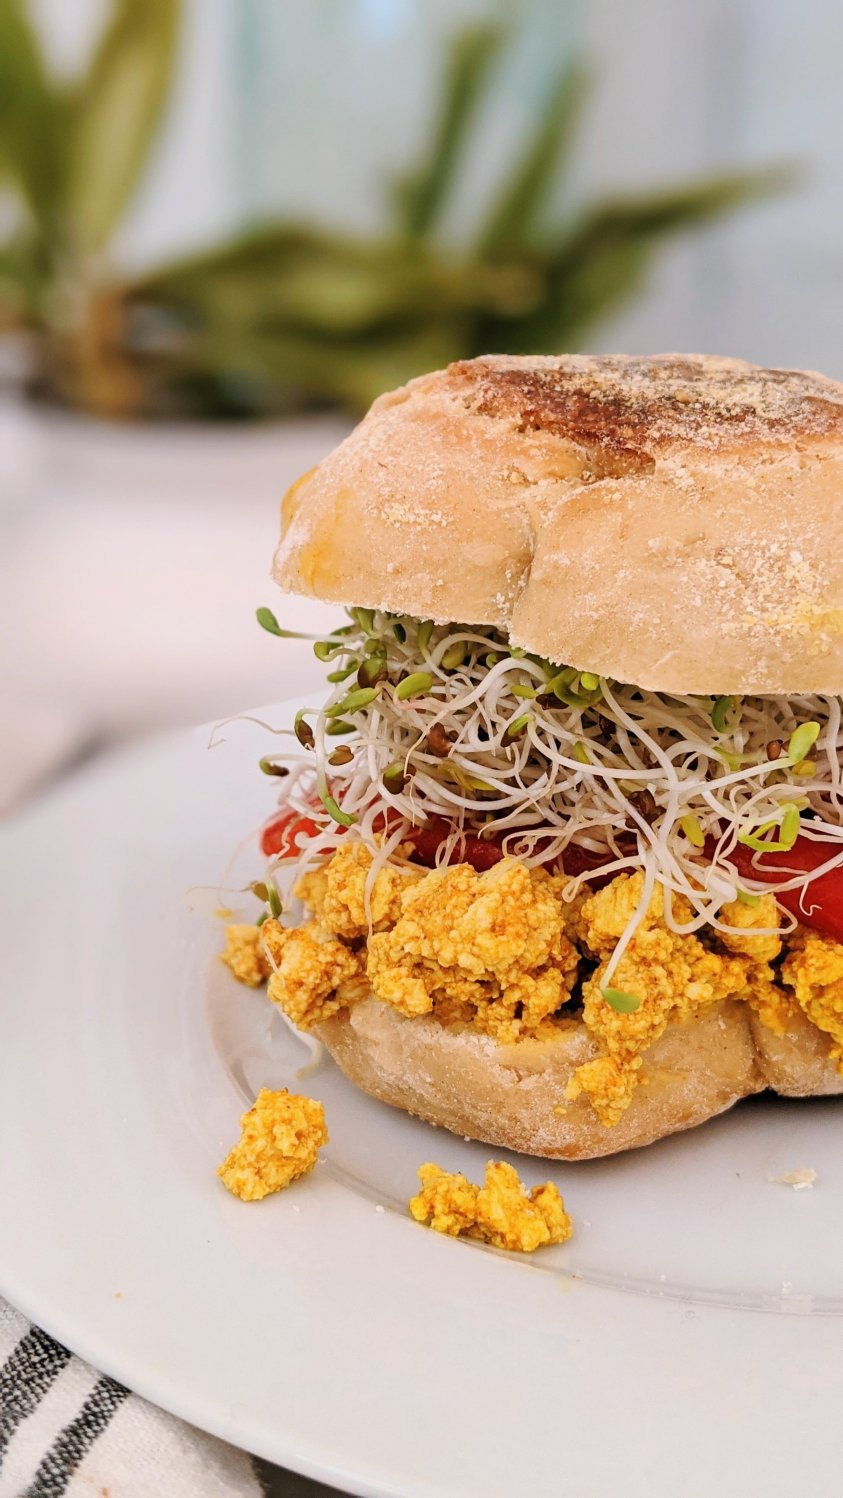 gluten free breakfast sandwich no eggs recipes vegan vegetarian egg free breakfast sandwich recipes brunch ideas without eggs dairy free high protein recipes